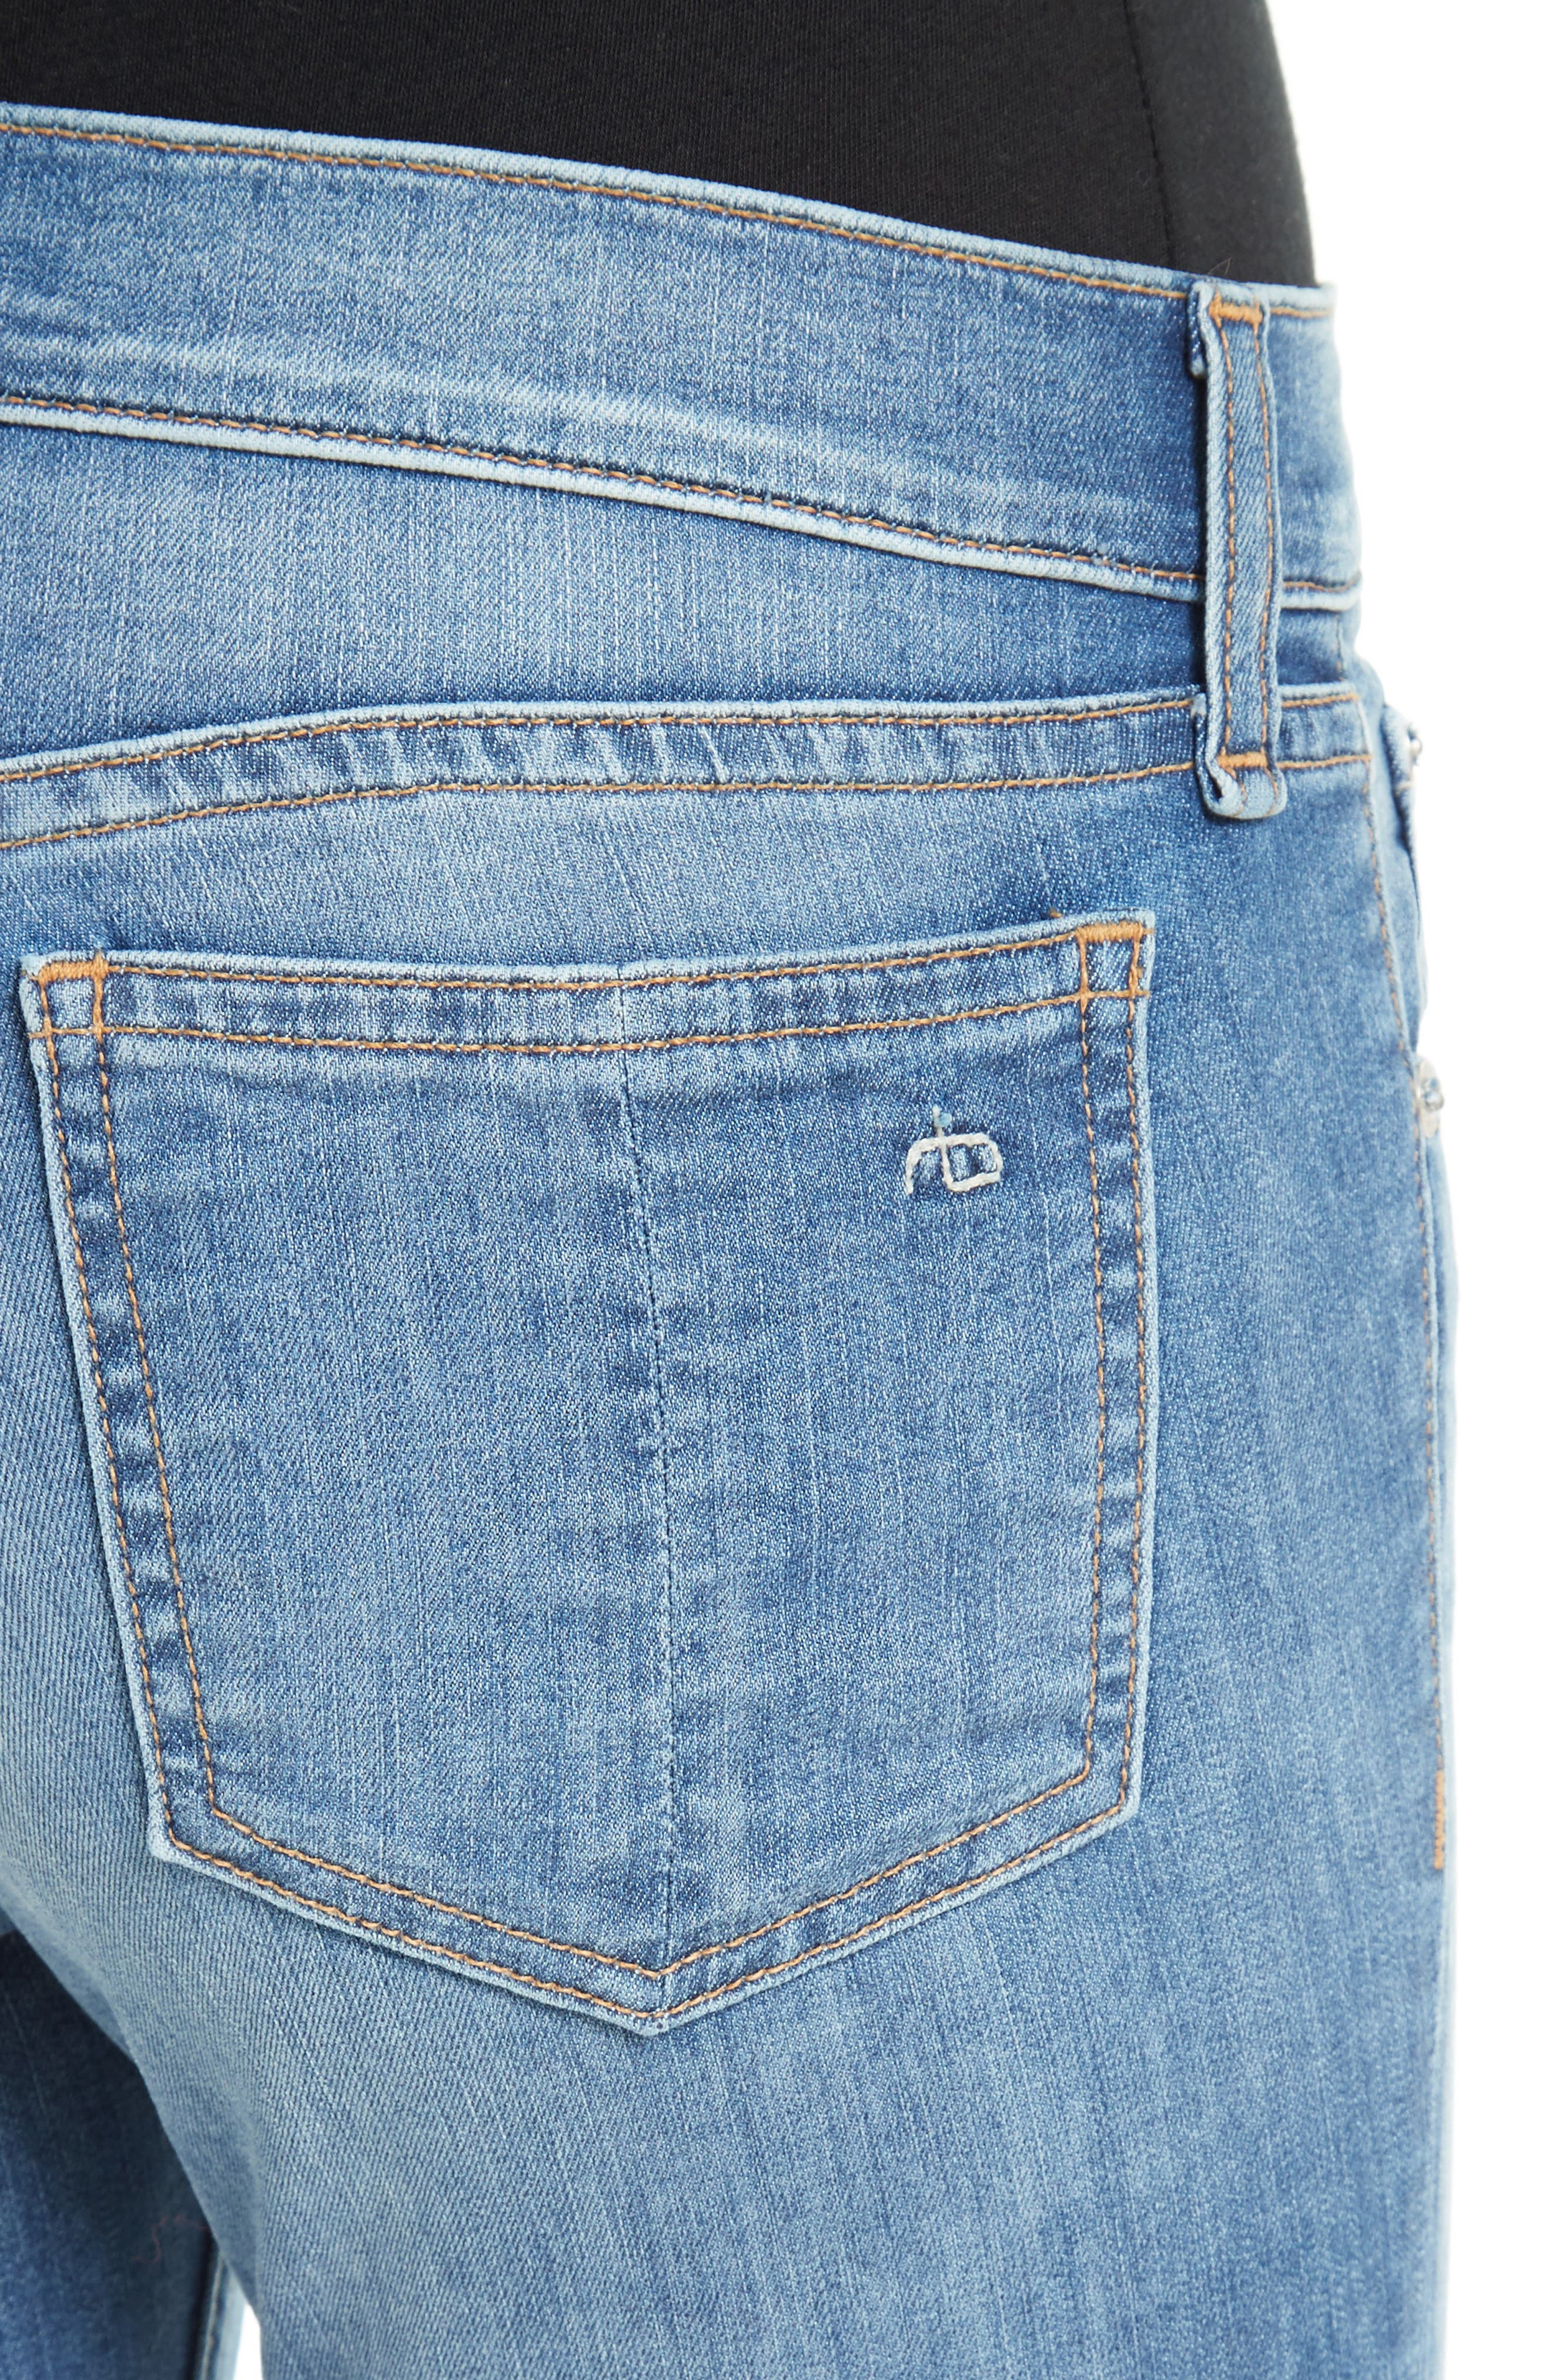 Capri Skinny Jeans,                             Alternate thumbnail 4, color,                             CLEAN LILLY DALE